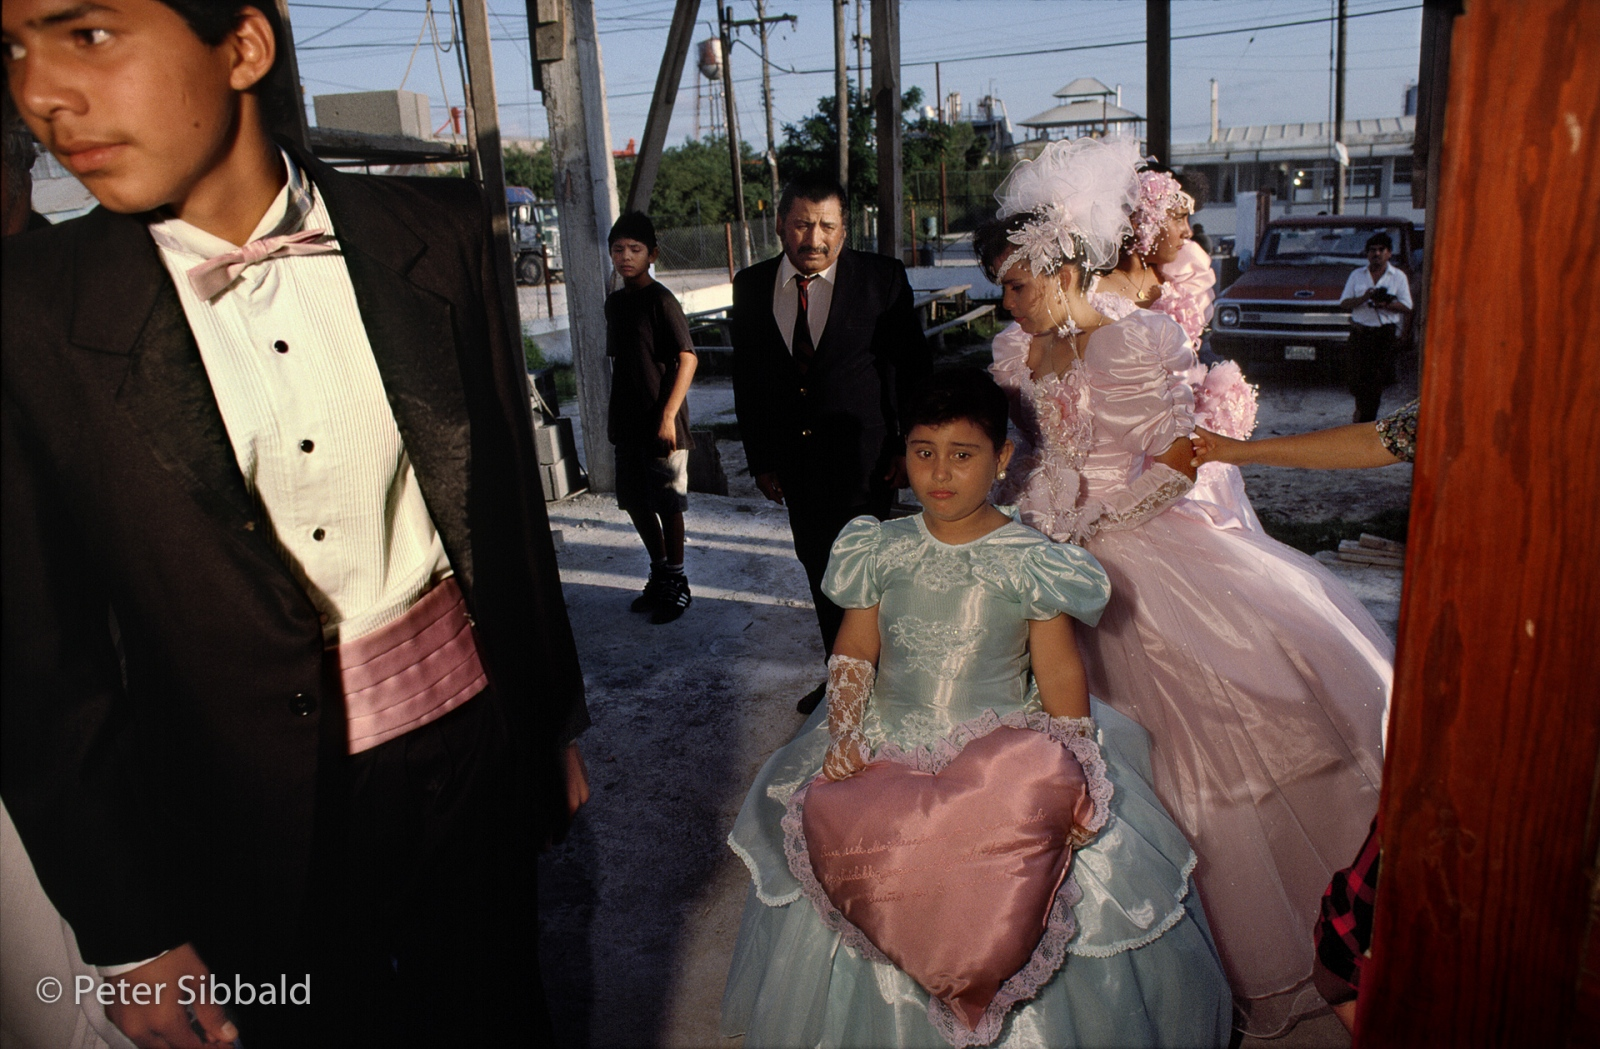 In Matamoros, a quinceañera or coming out ceremony is held in an Avenida Uniones church across from a chemical plant, whose noxious fumes assault pariticipants arriving at the cermony. © Peter Sibbald, 1993